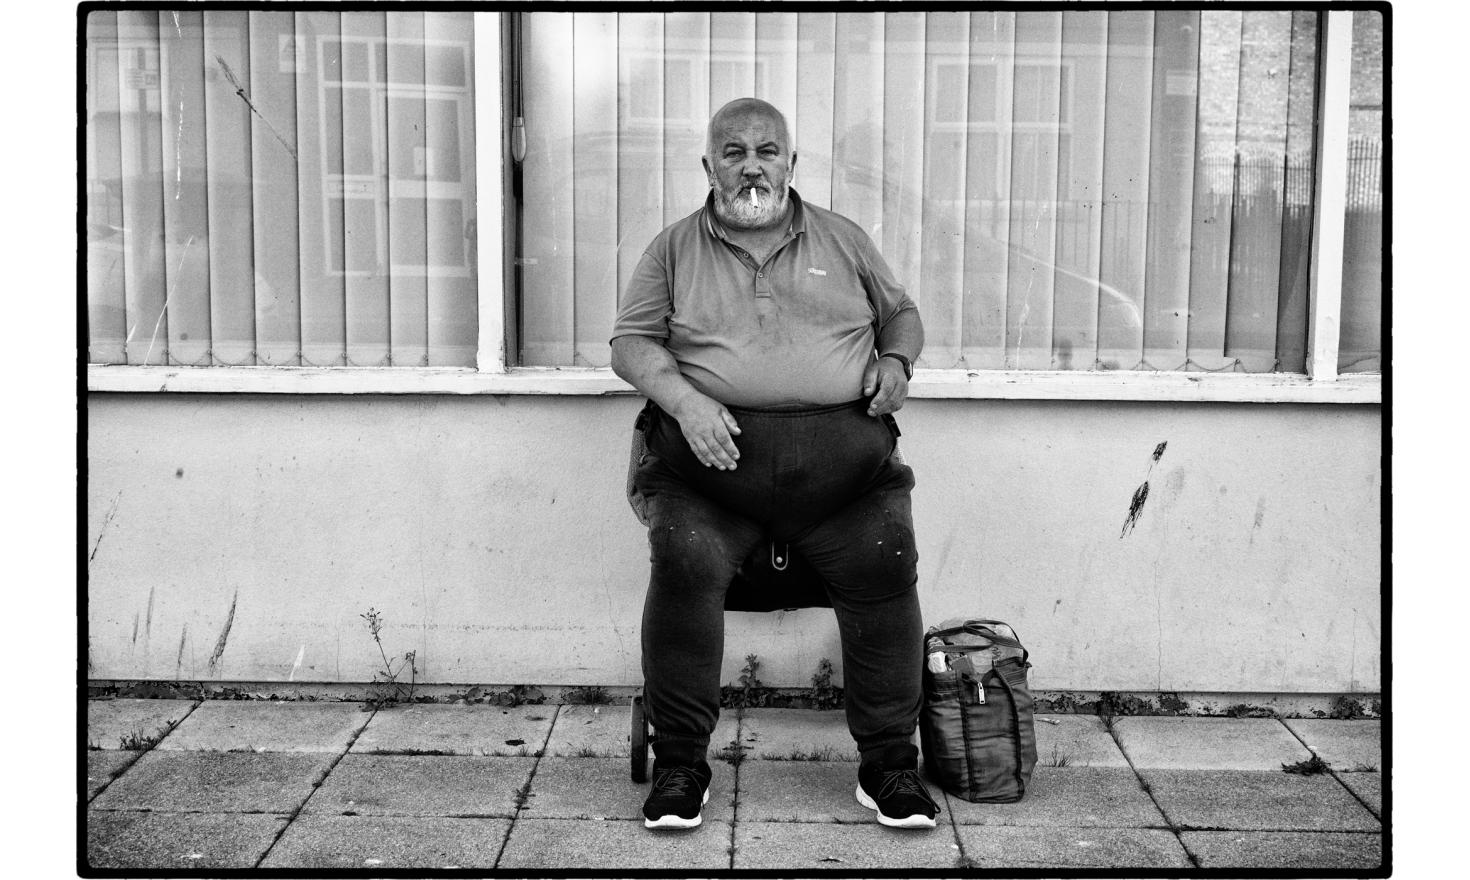 """As I was going to the railway station, very early morning, the man  greeted me with a"""" hello, how are you"""". I realized after that I saw him the night before at the same place. Clacton on sea, England. July 2016."""